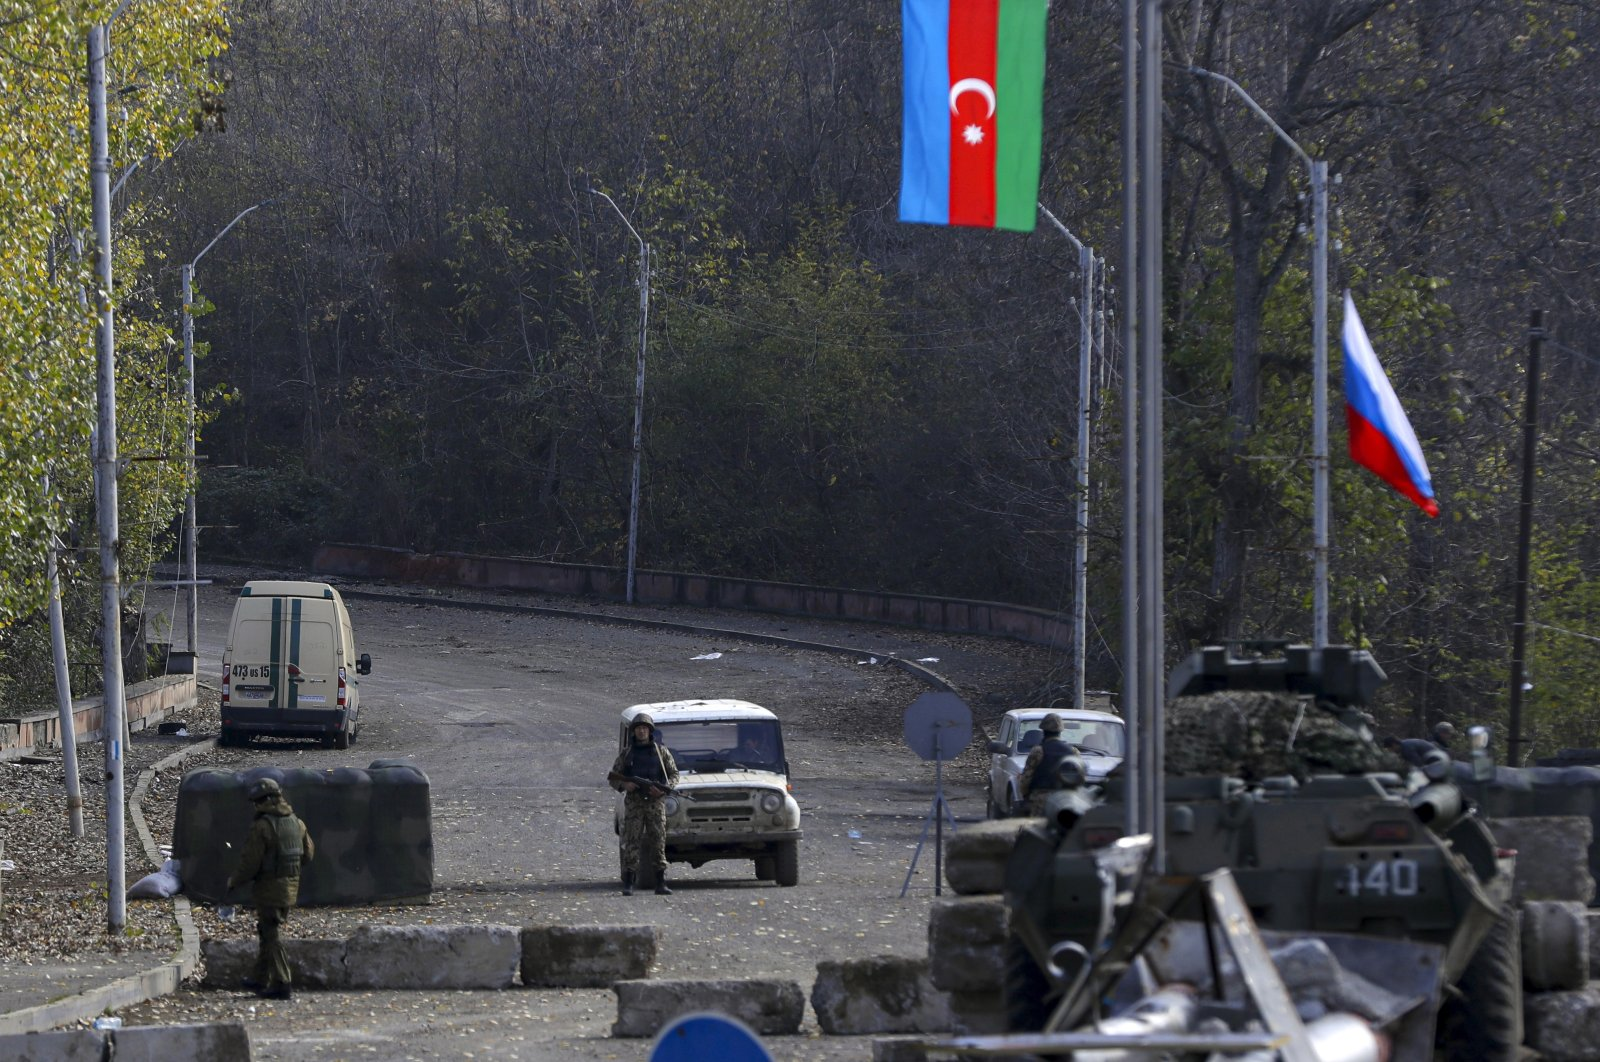 An Azerbaijani soldier (C) stands in front of an off-road car as Russian peacekeepers' military vehicles parked at a checkpoint on the road to Shusha in Nagorno-Karabakh, Nov. 17, 2020. (AP File Photo)